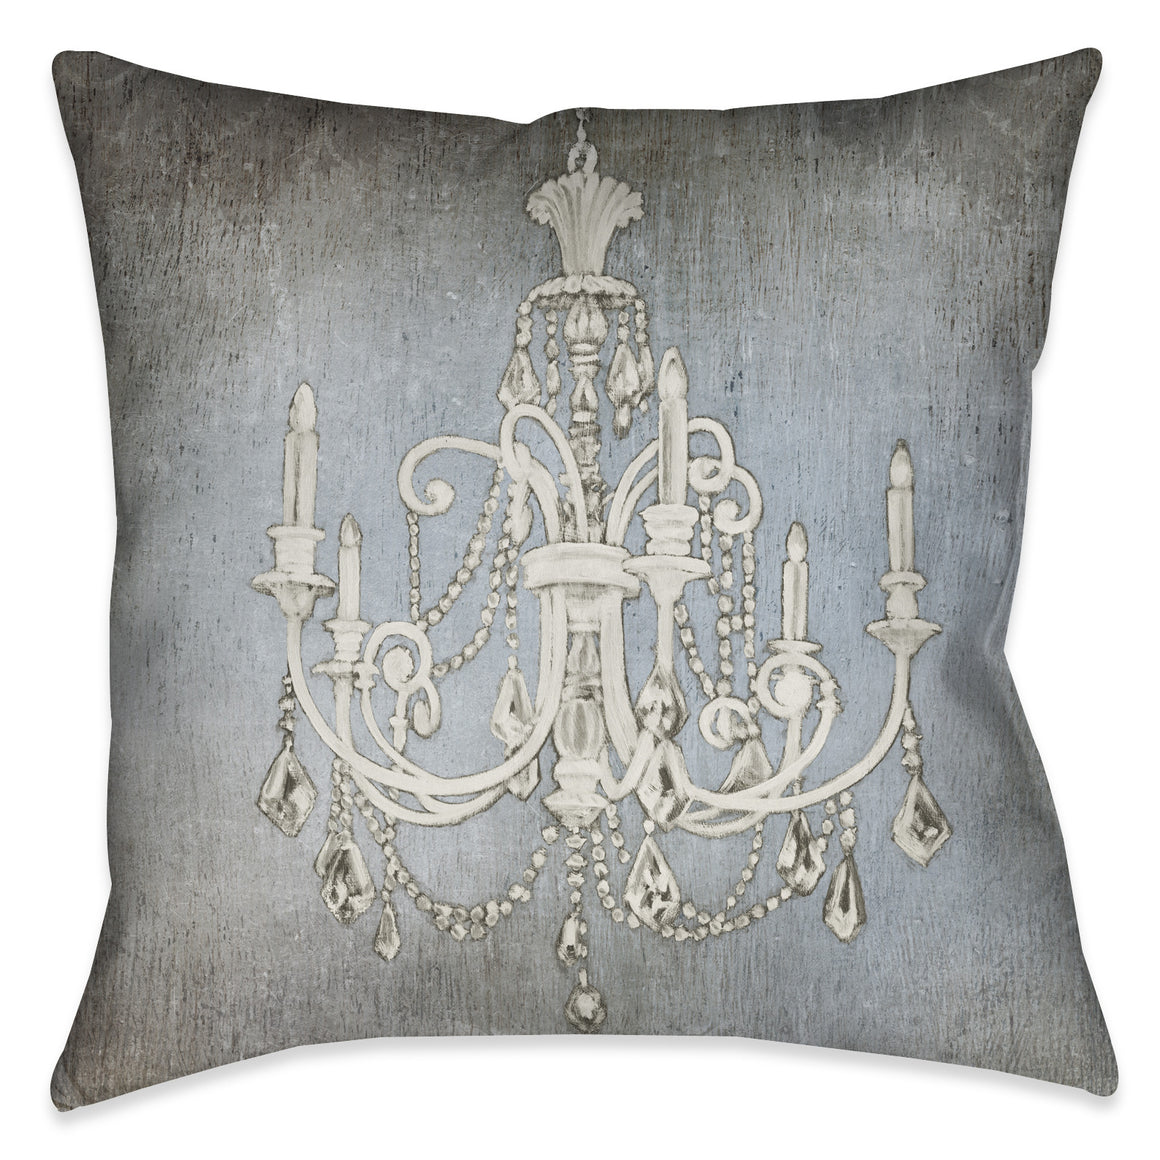 Luxurious Lights Pillow I